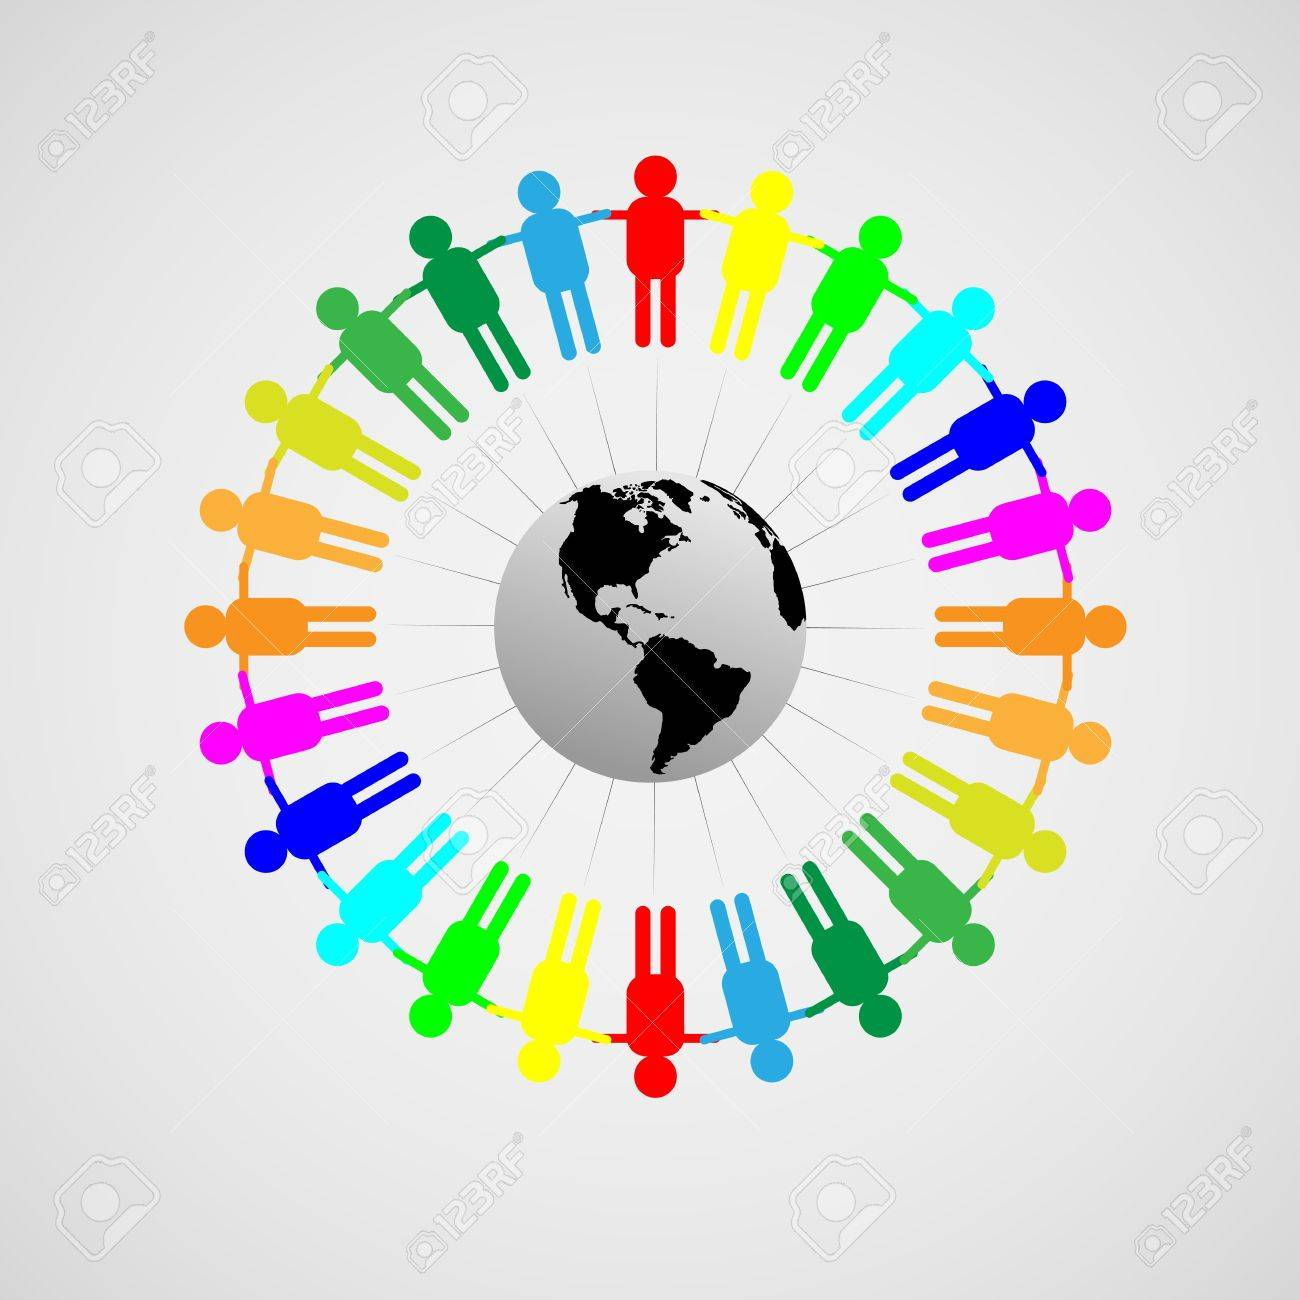 Abstract composition symbolizing world peace and friendship of all people throughout the world Stock Vector - 19760355